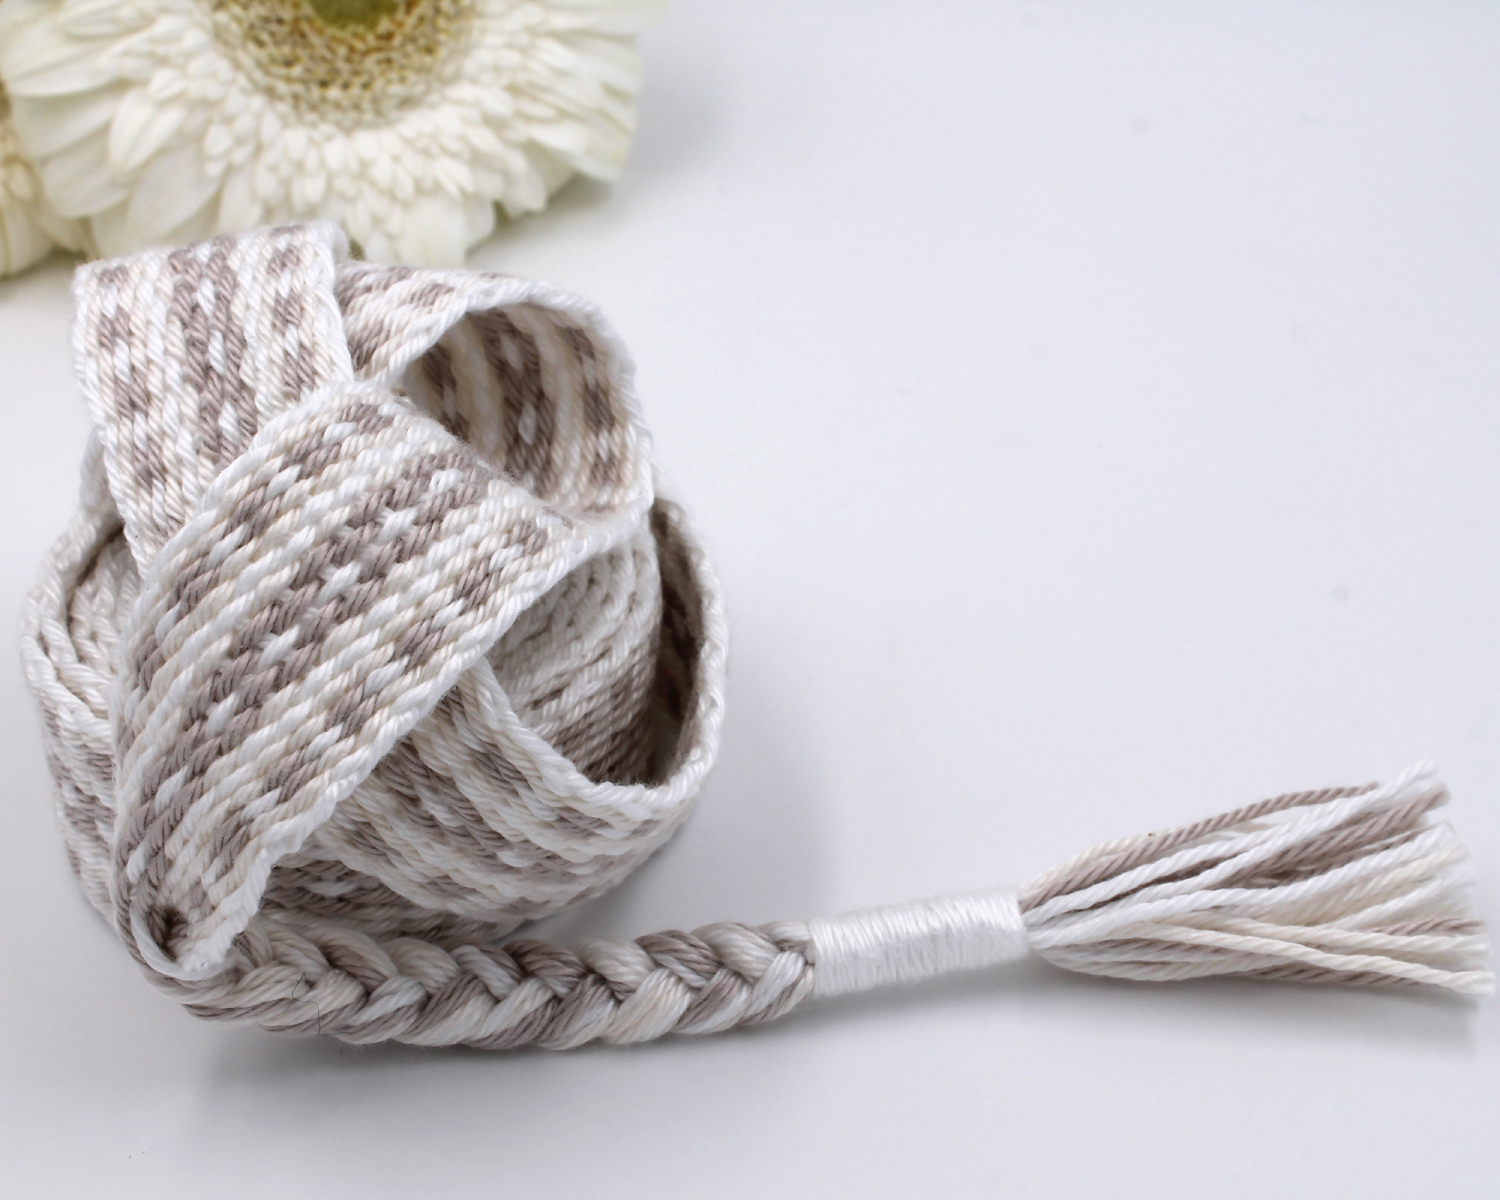 Handfasting Cord - Holding Union  (2)